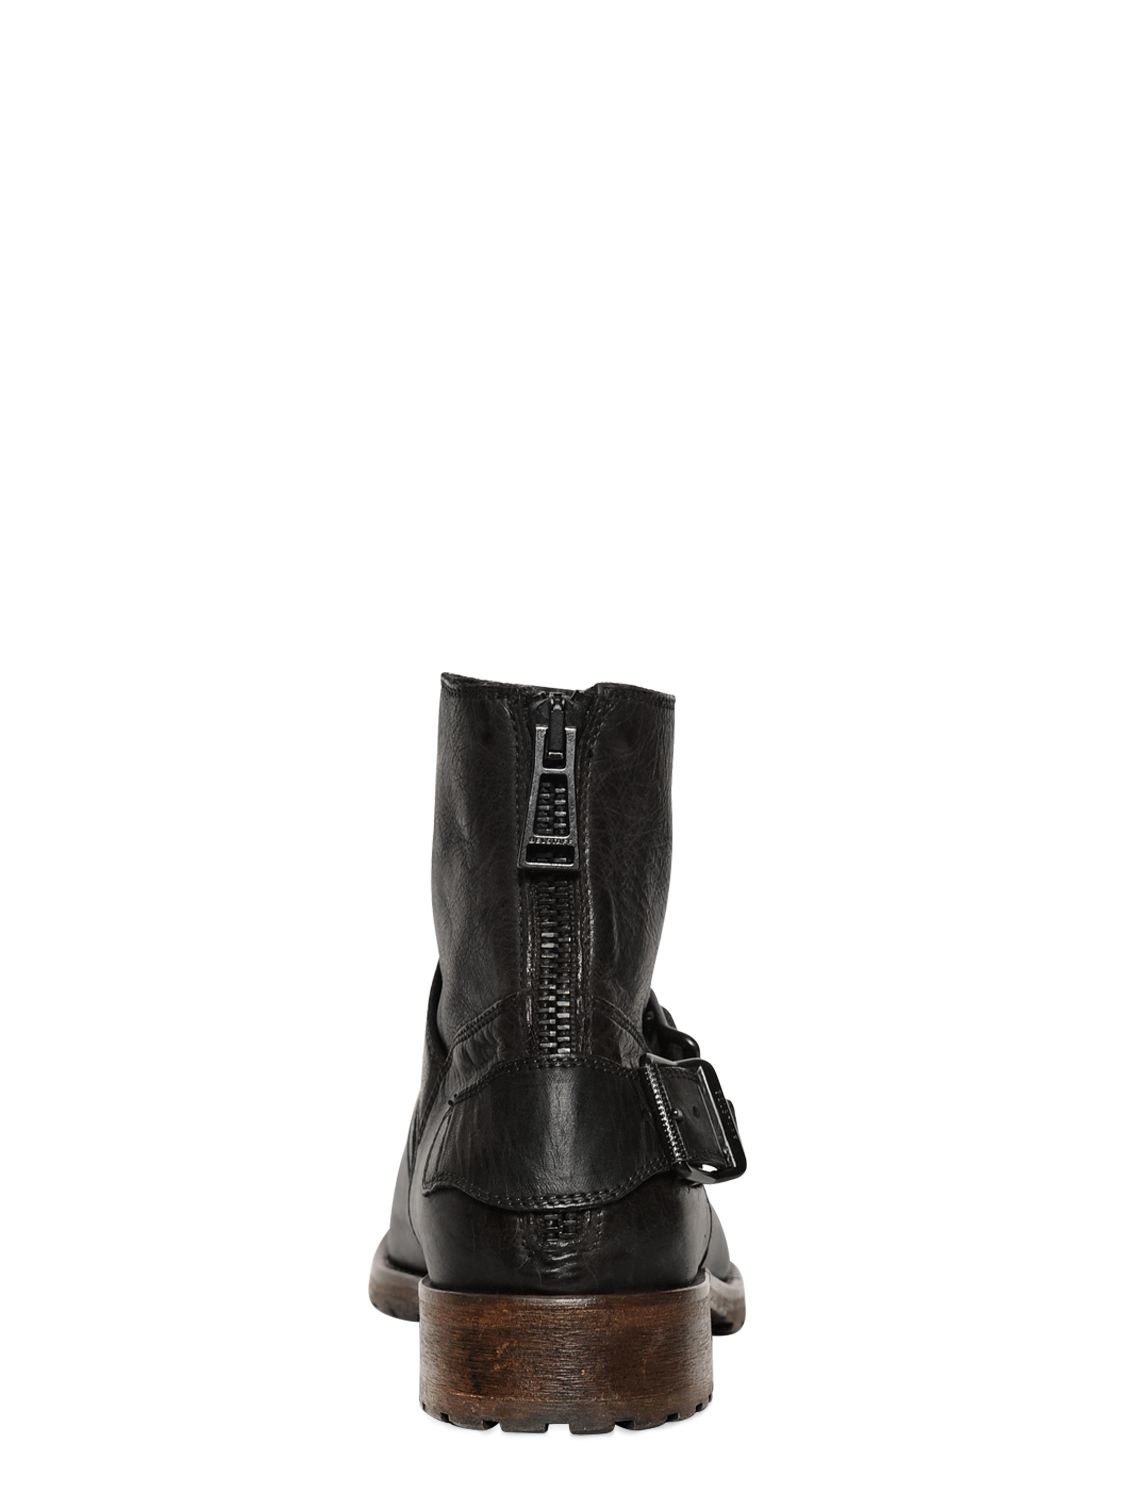 Belstaff Trialmaster Waxed Leather Ankle Boots In Black